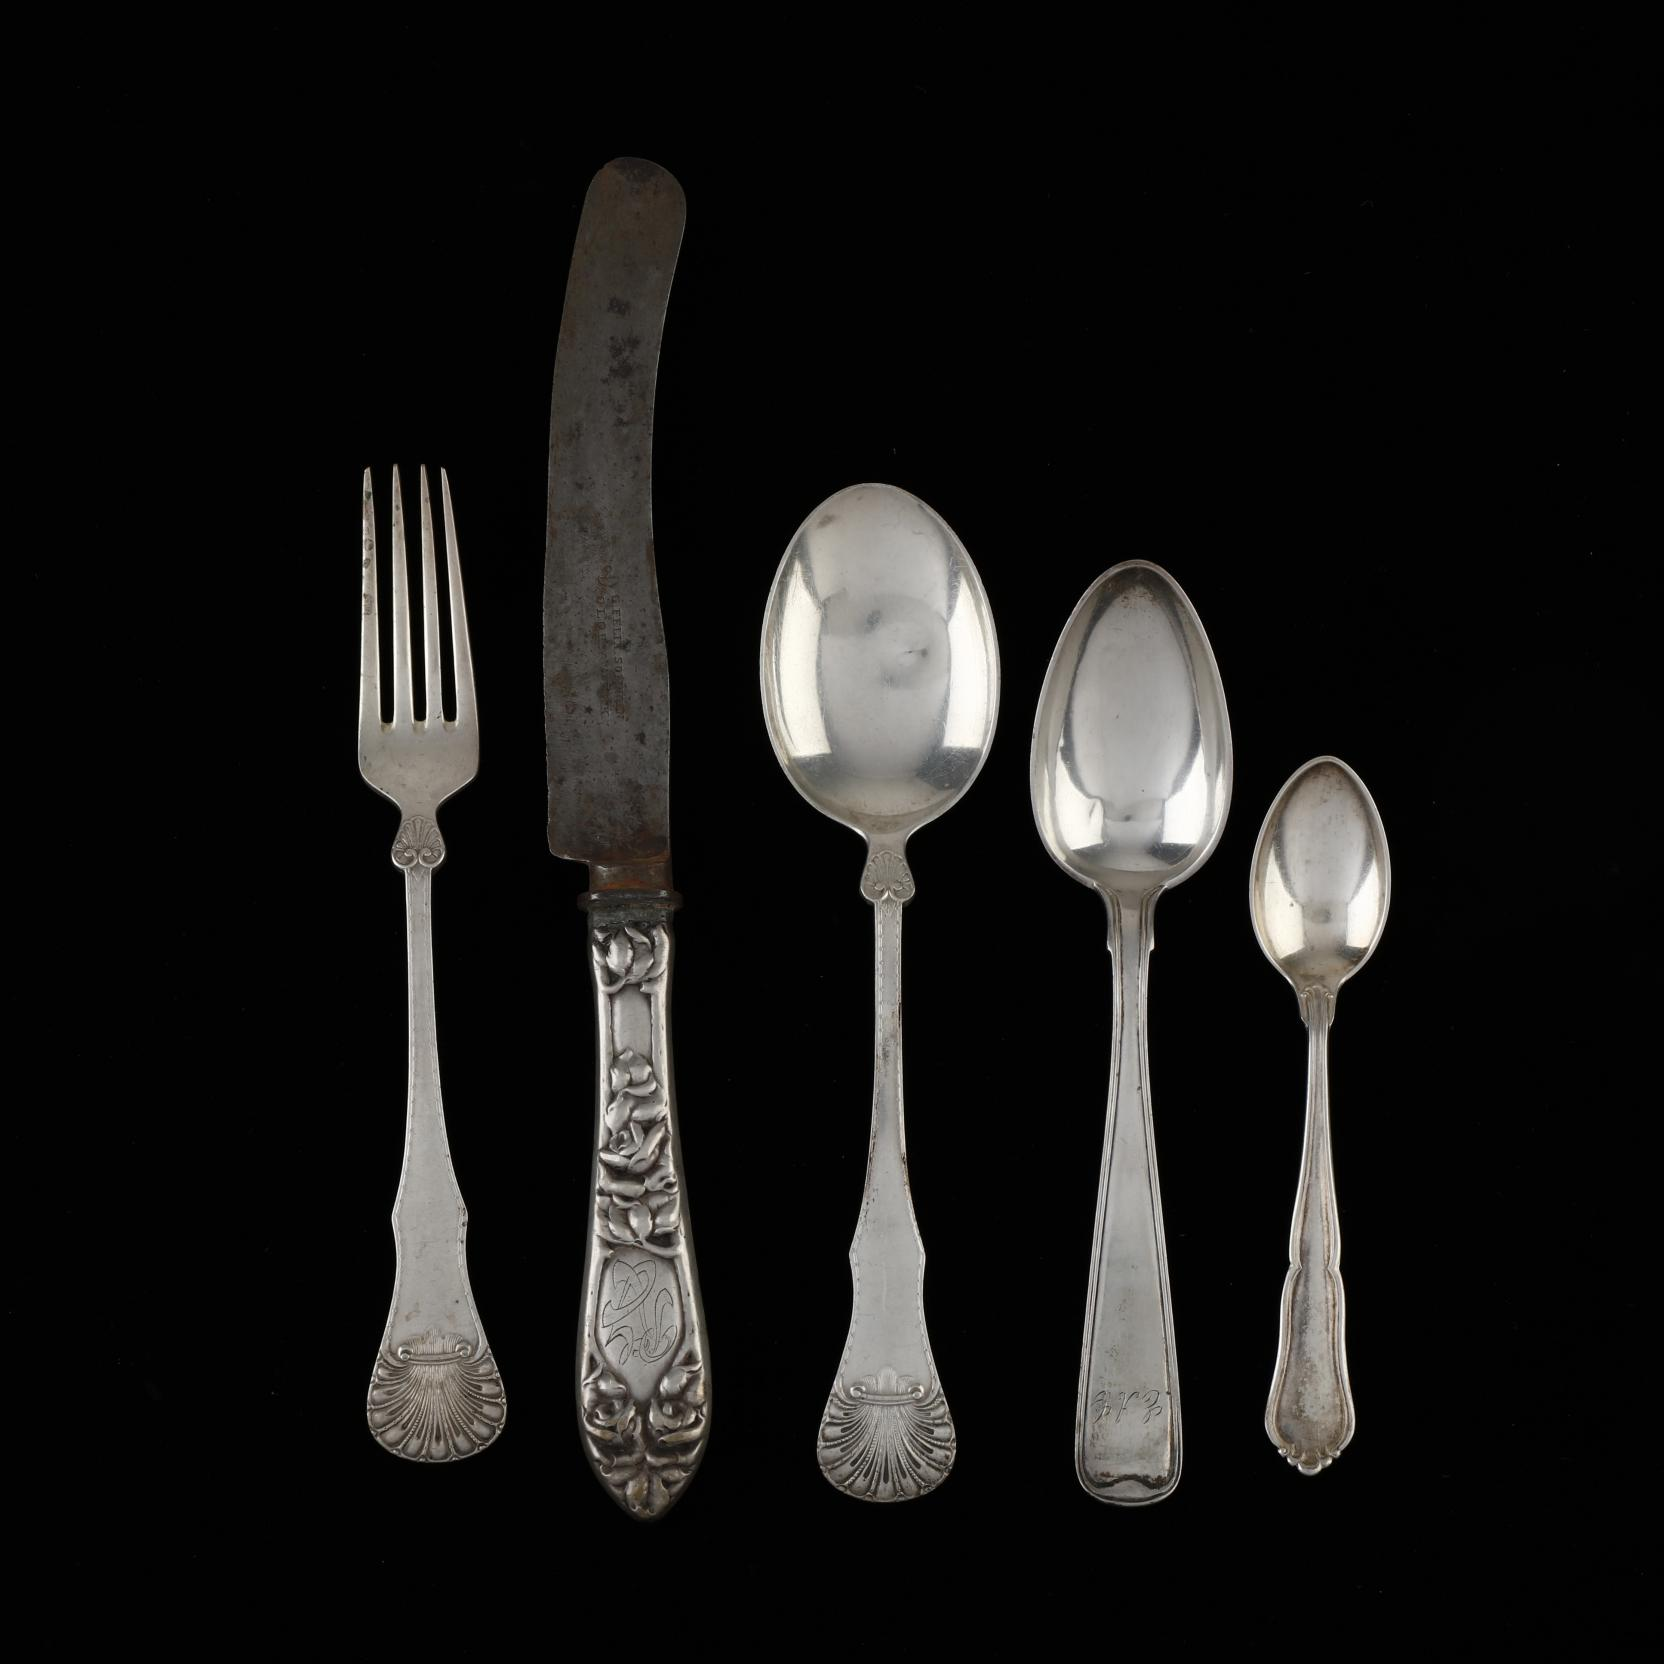 a-collection-of-scandanavian-silver-flatware